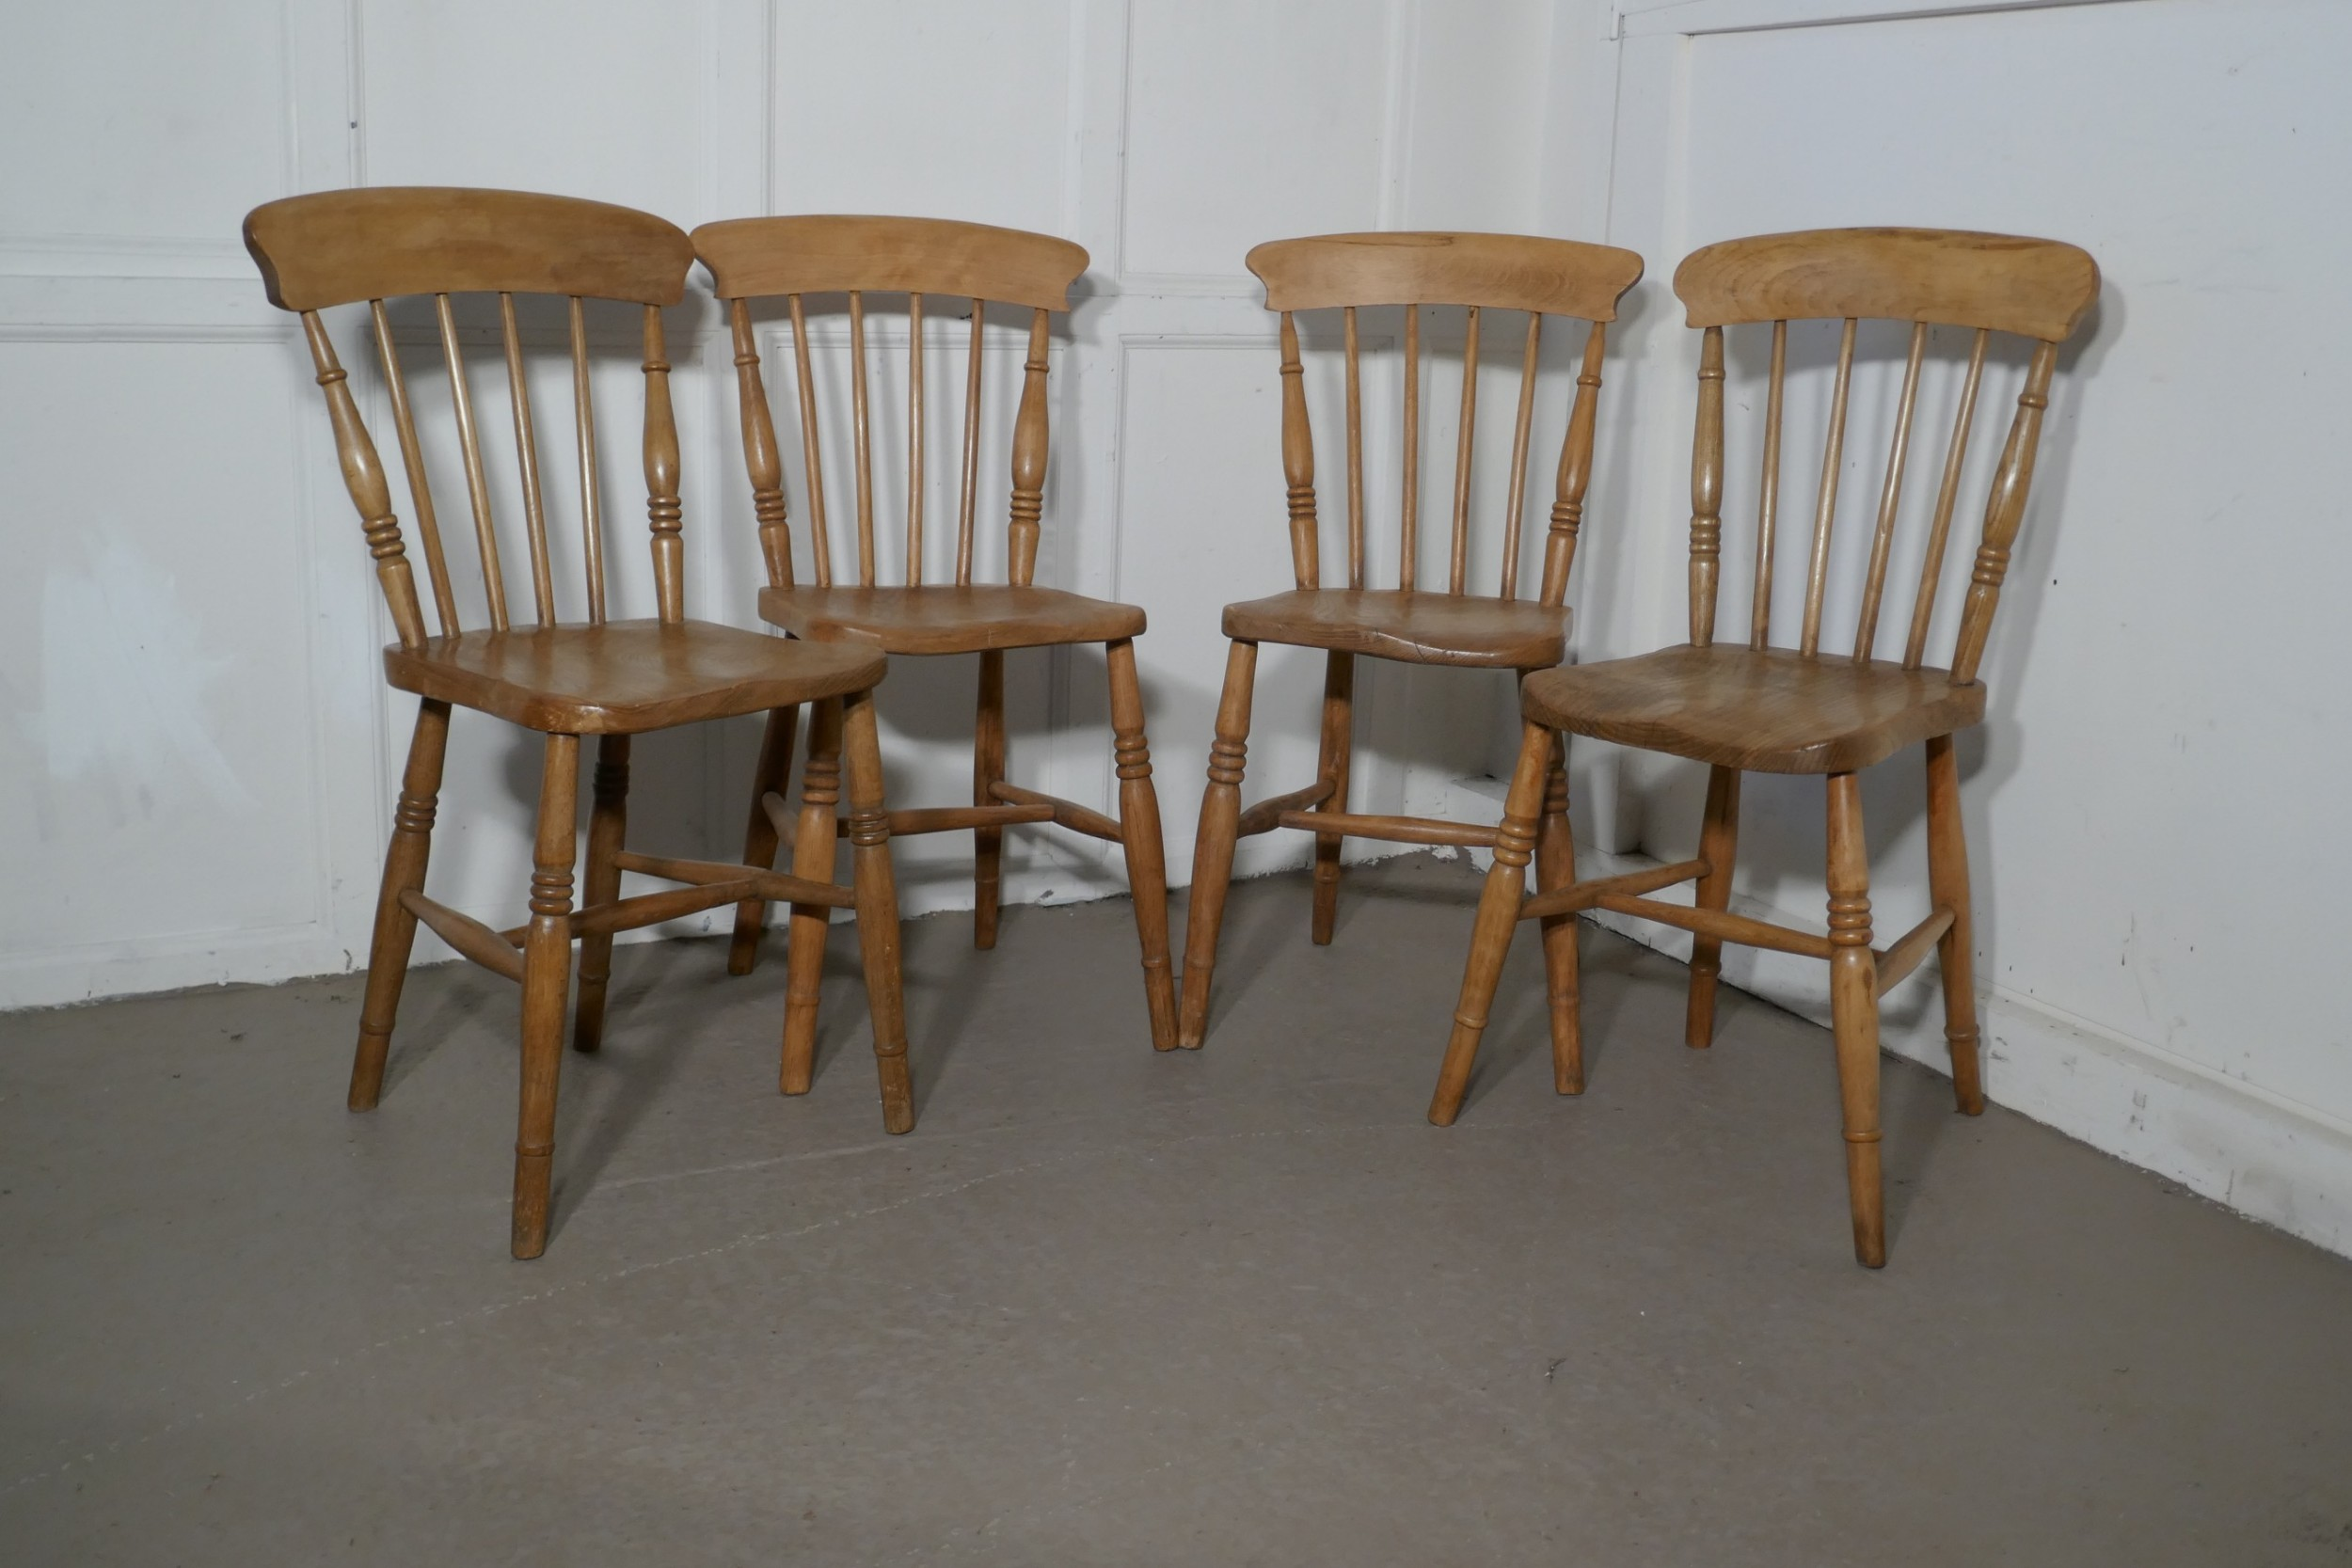 harlequin set of 4 victorian beech elm country kitchen chairs